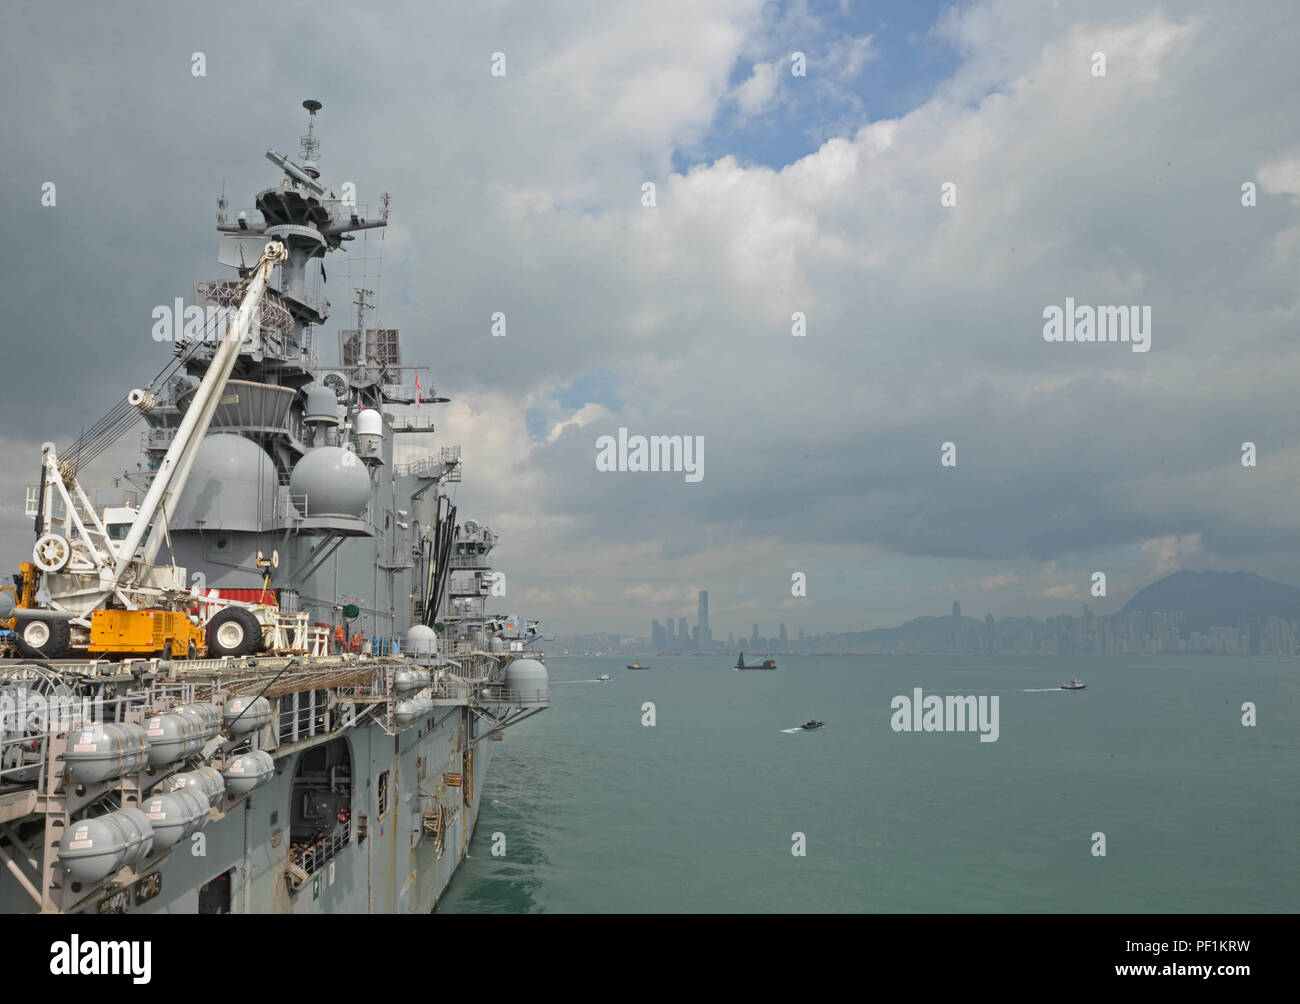 161002-N-YG104-001 HONG KONG (Oct. 02, 2016) The amphibious assault ship USS Bonhomme Richard (LHD 6) departs the harbor of Hong Kong after a scheduled port visit. Bonhomme Richard Expeditionary Strike Group, with embarked 31st MEU, was in Hong Kong to experience the city's rich culture and history as part of their multi-month patrol in the region. Stock Photo